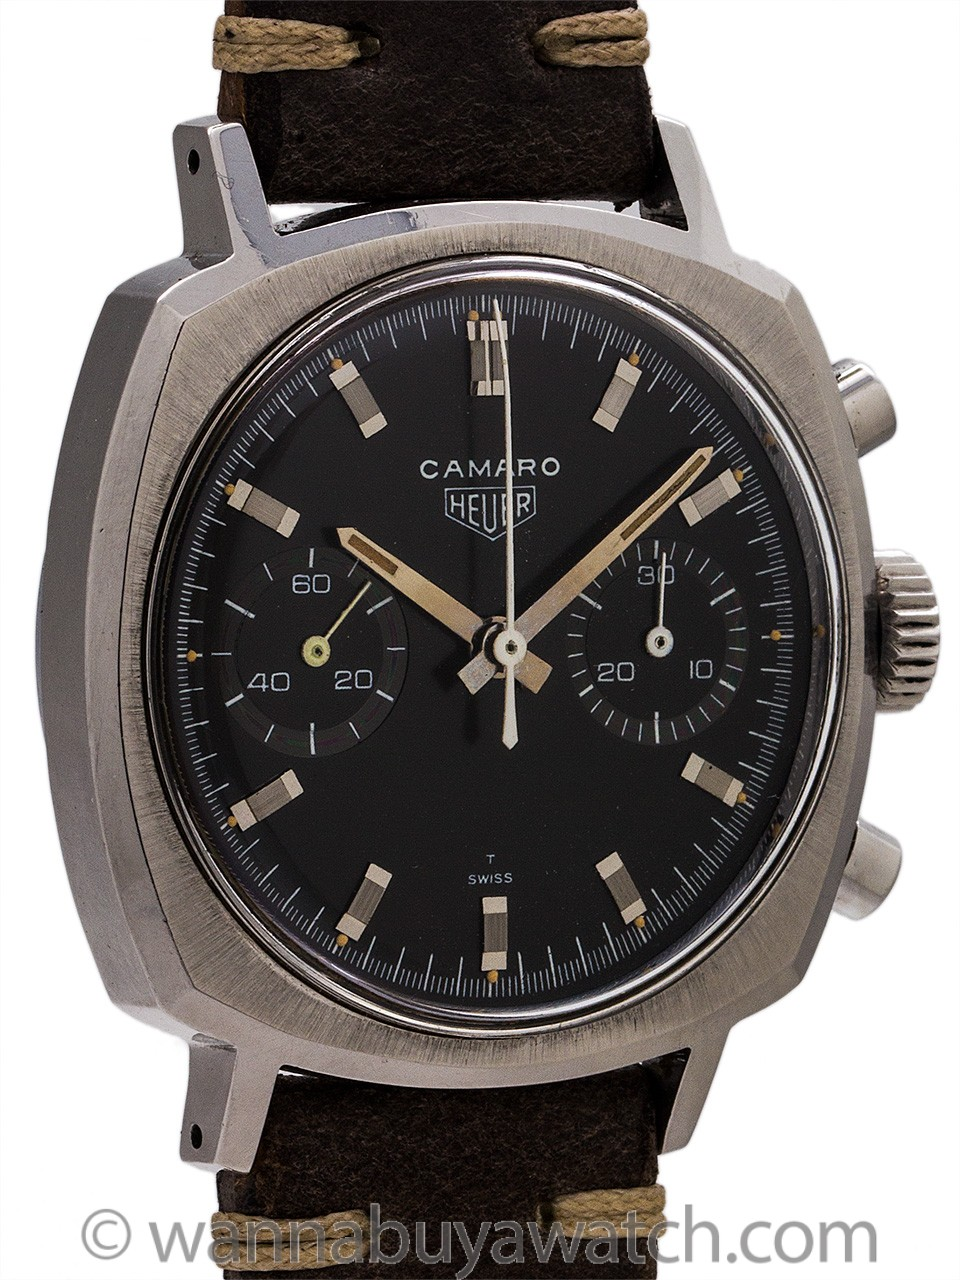 "Heuer Camaro Chronograph ref 7743 ""Charcoal"" Dial circa 1960's MINT!"